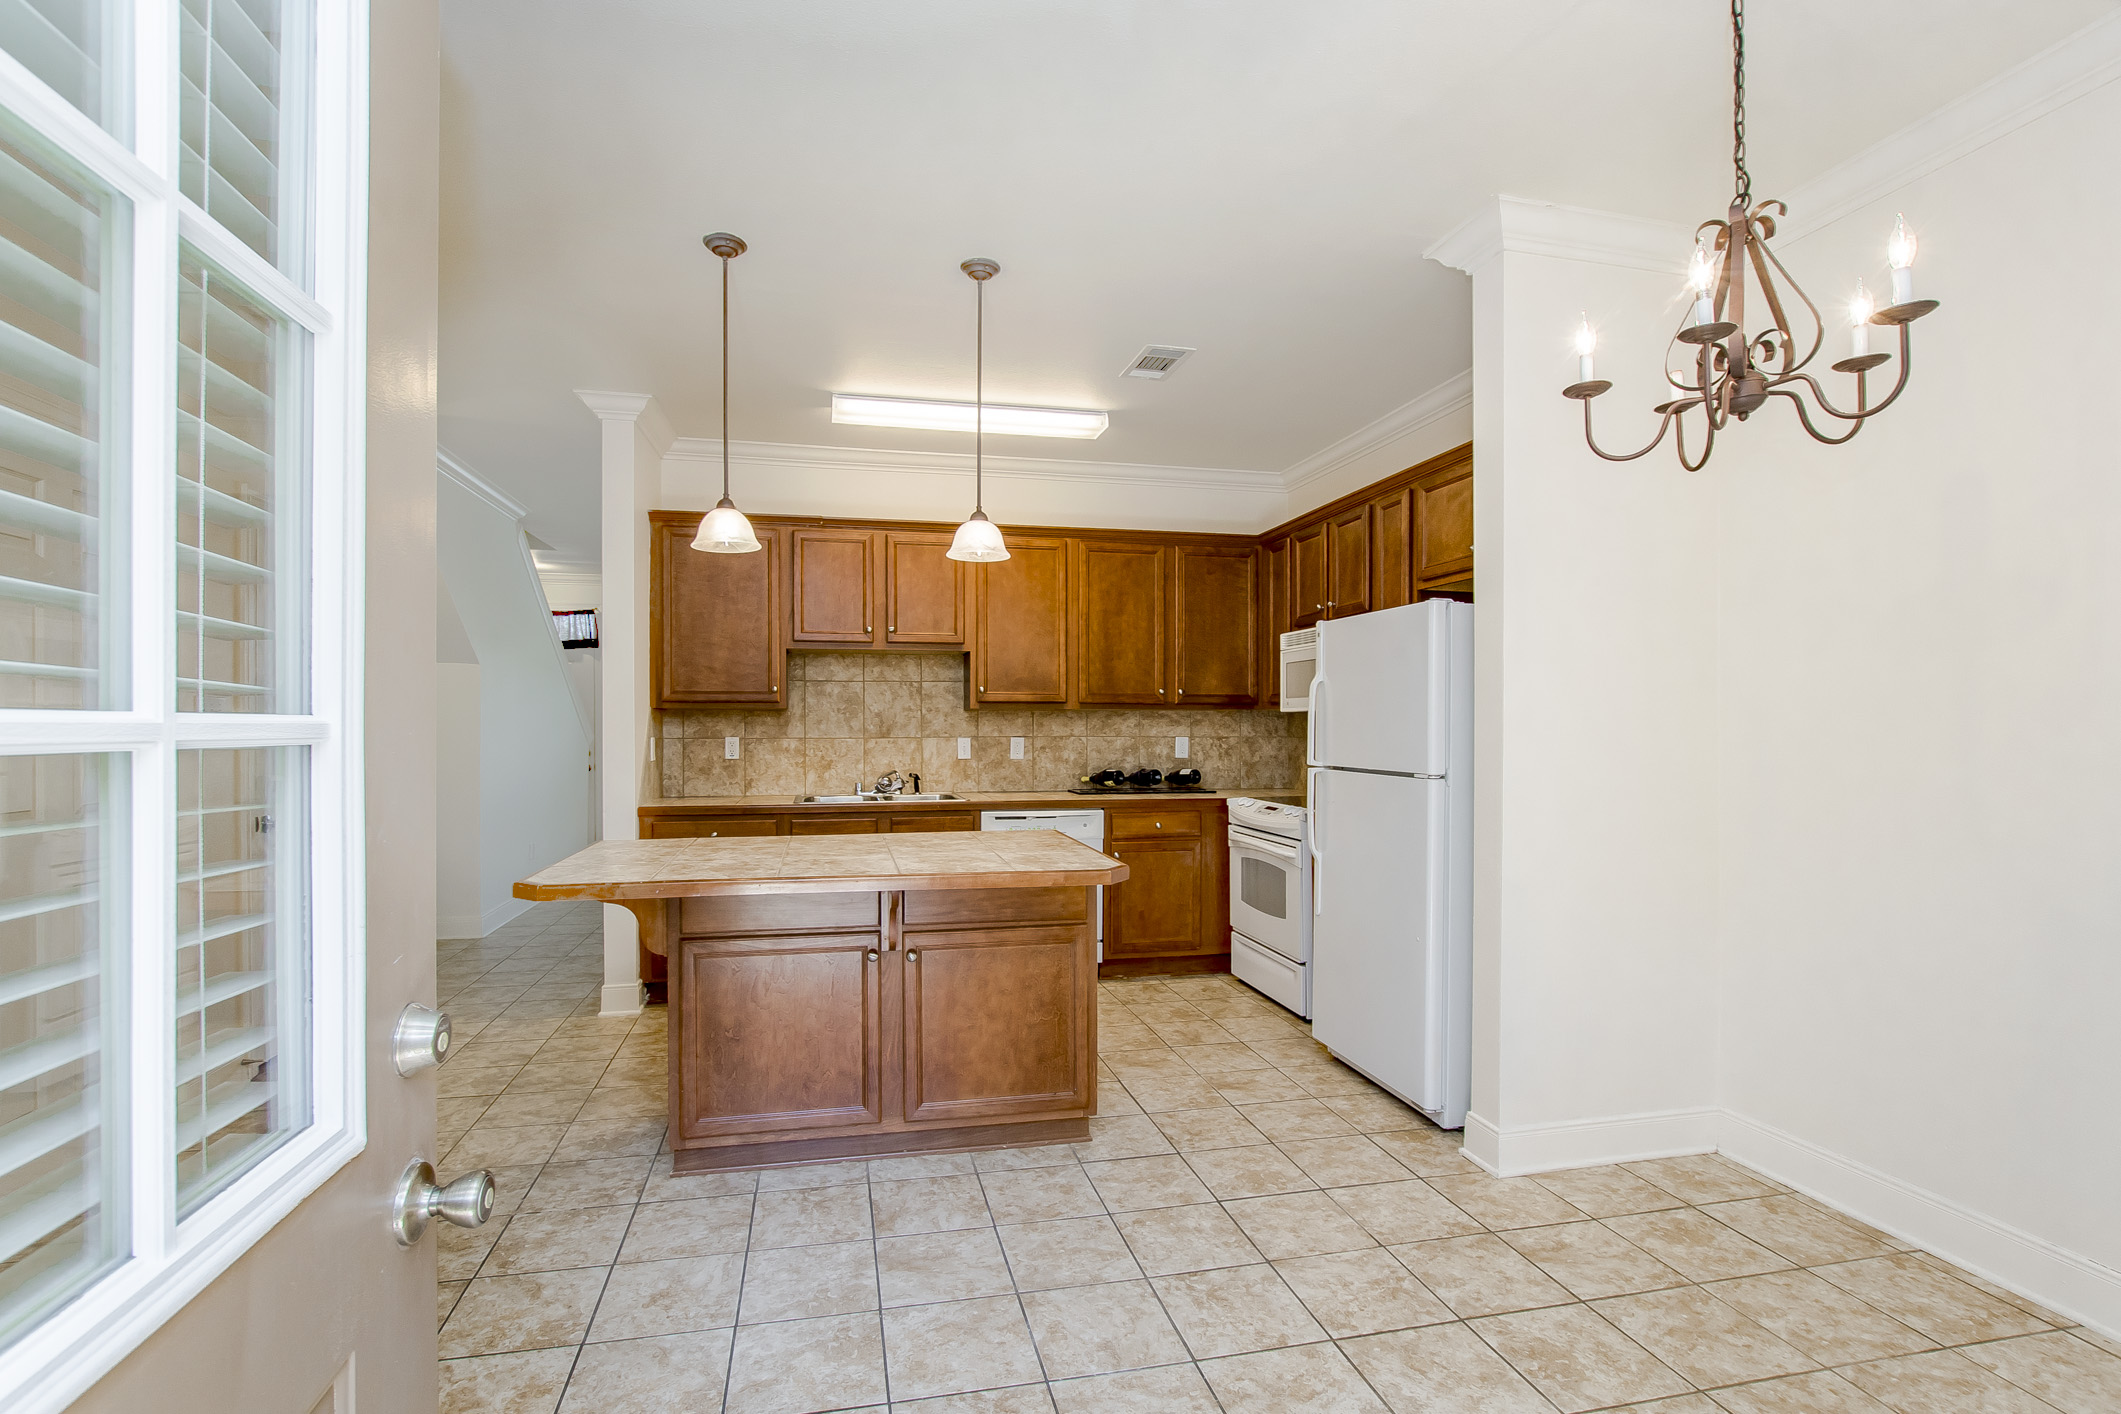 Fresh & Clean 2BR condo in Baton Rouge